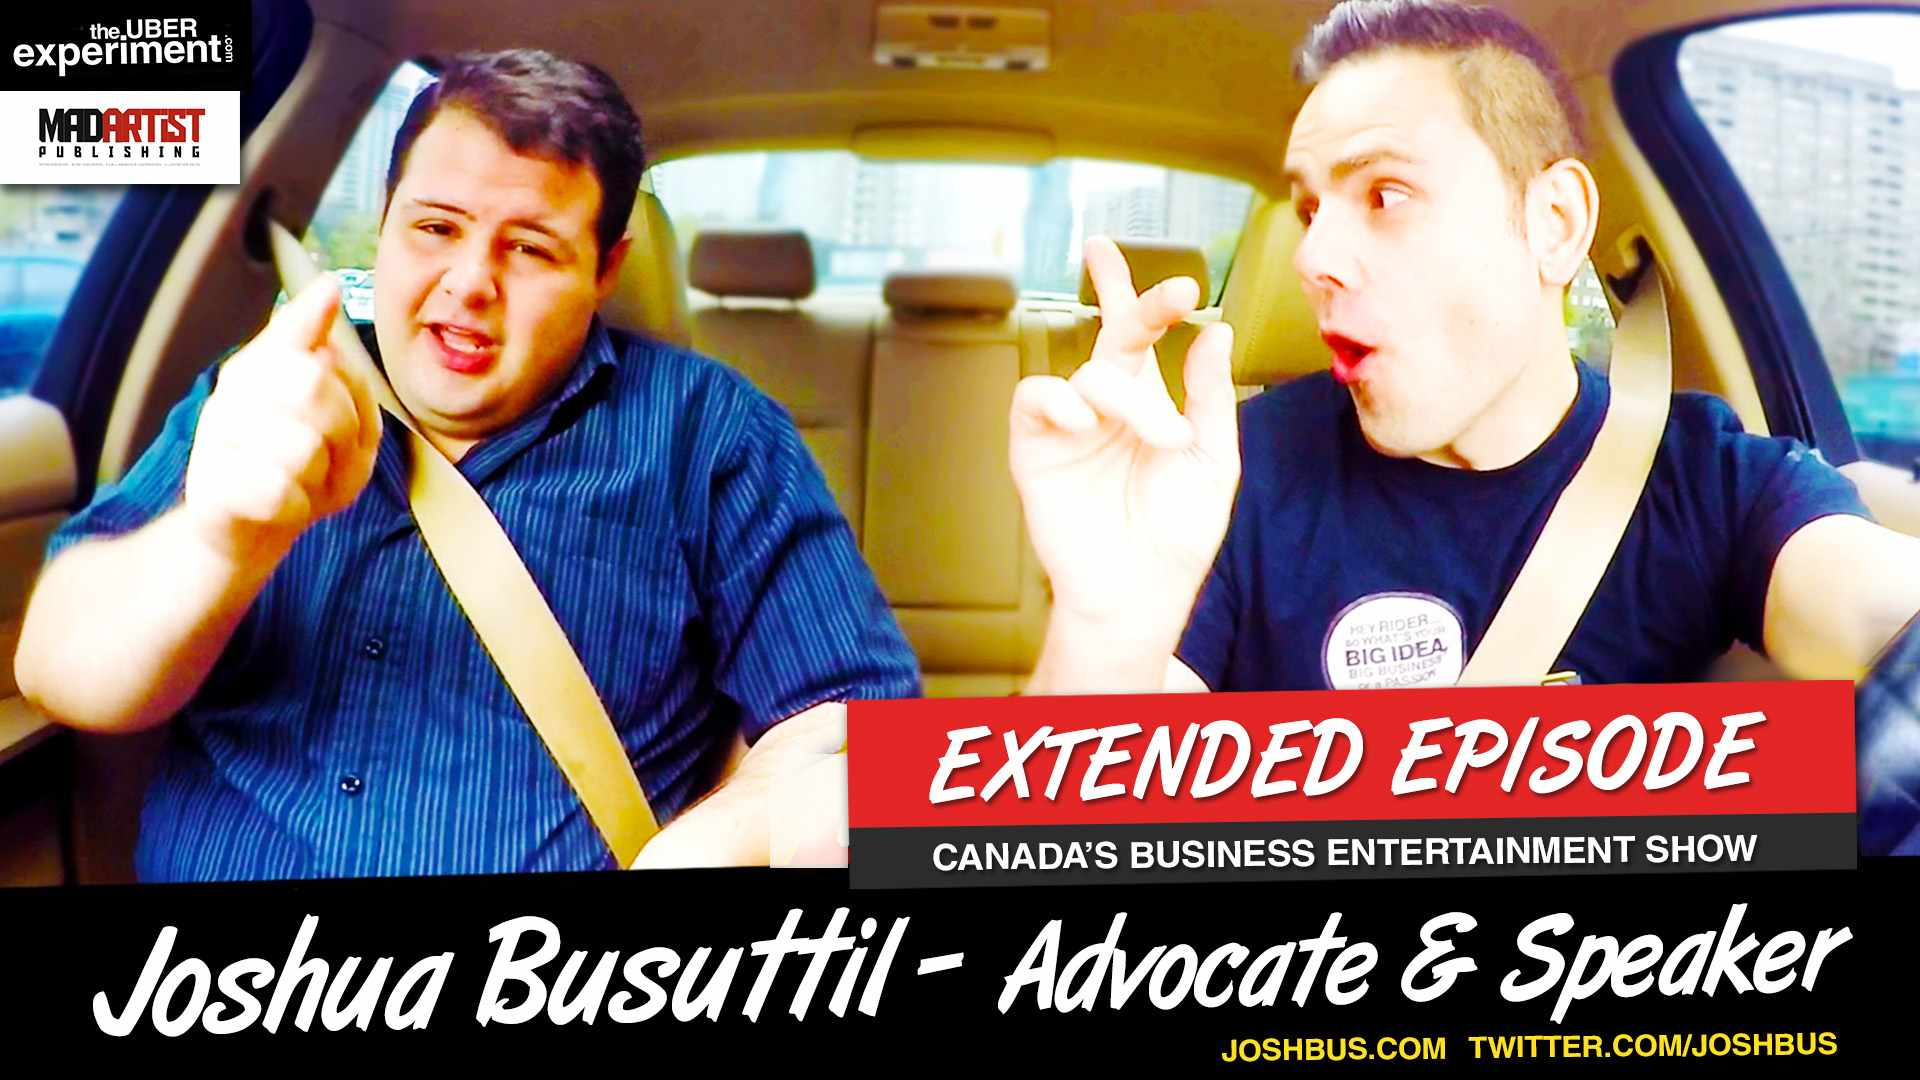 DEPRESSION, BULLYING, SUICIDE - Advocate & Speaker Joshua Busuttil rides The Uber Experiment Show